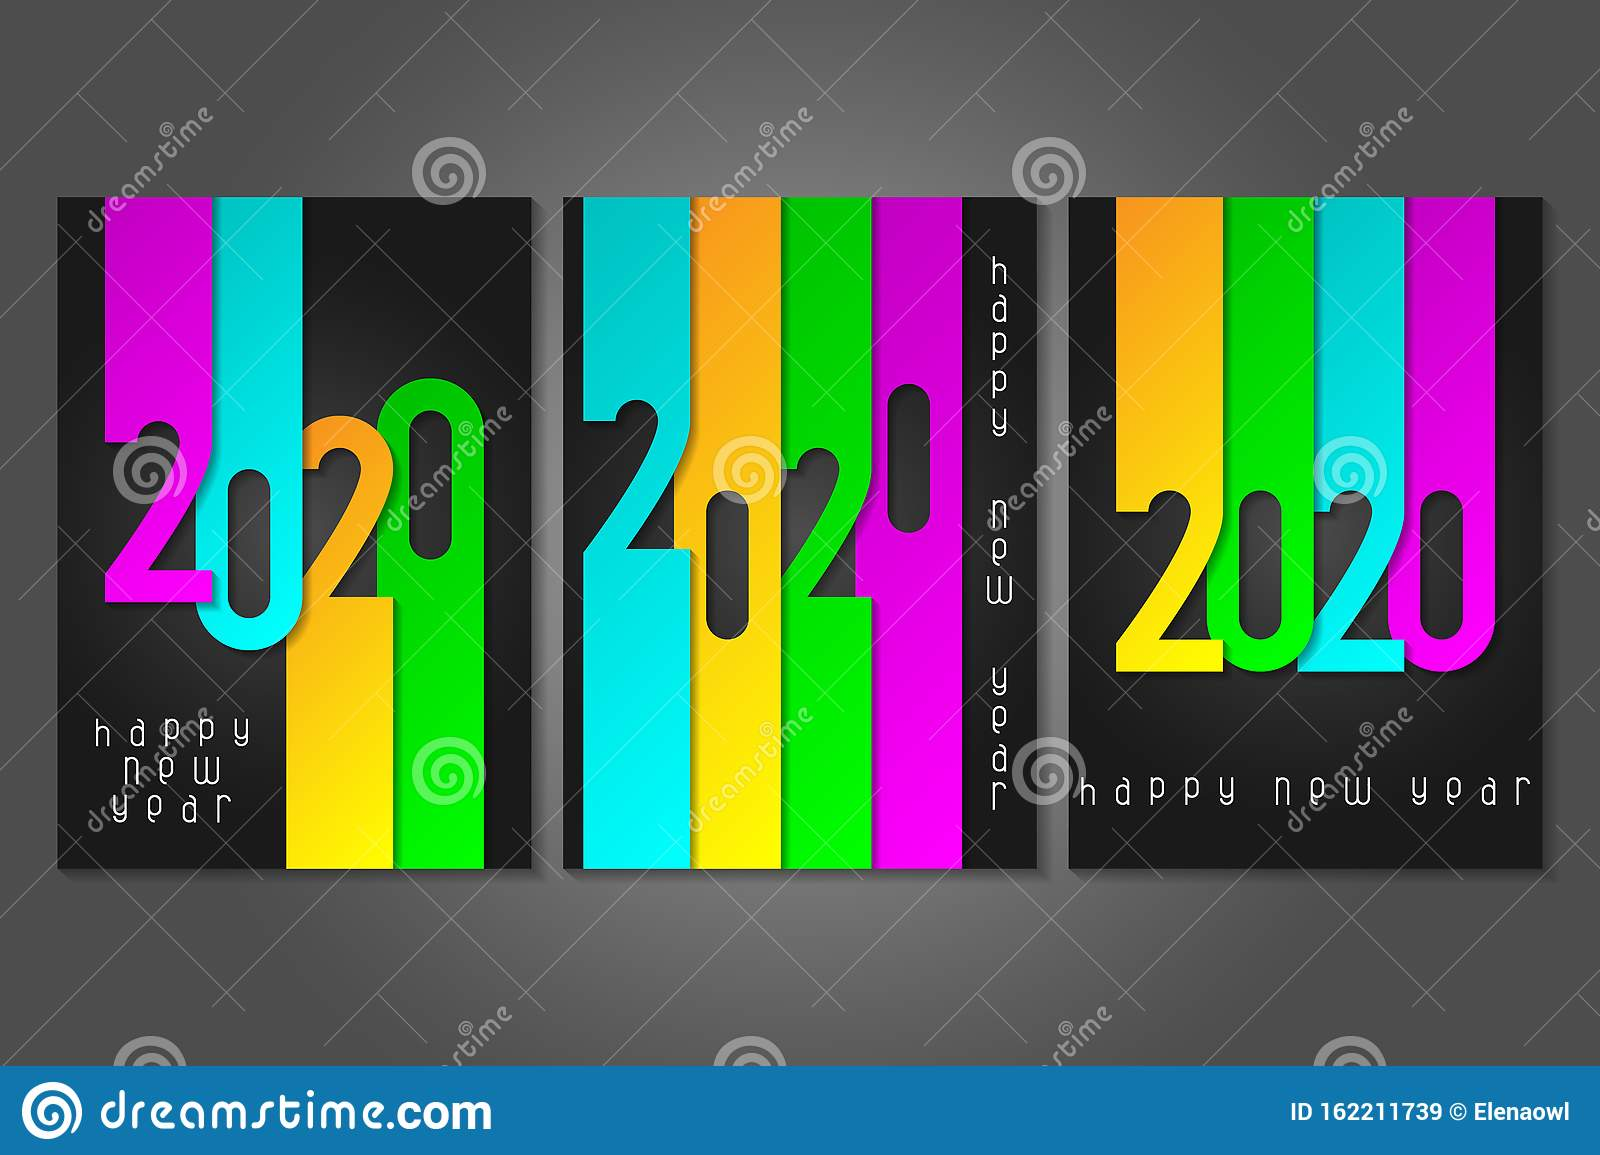 Set of Happy New Year 2020 posters with numbers cut out of colored paper. Winter holidays greeting or invitation.